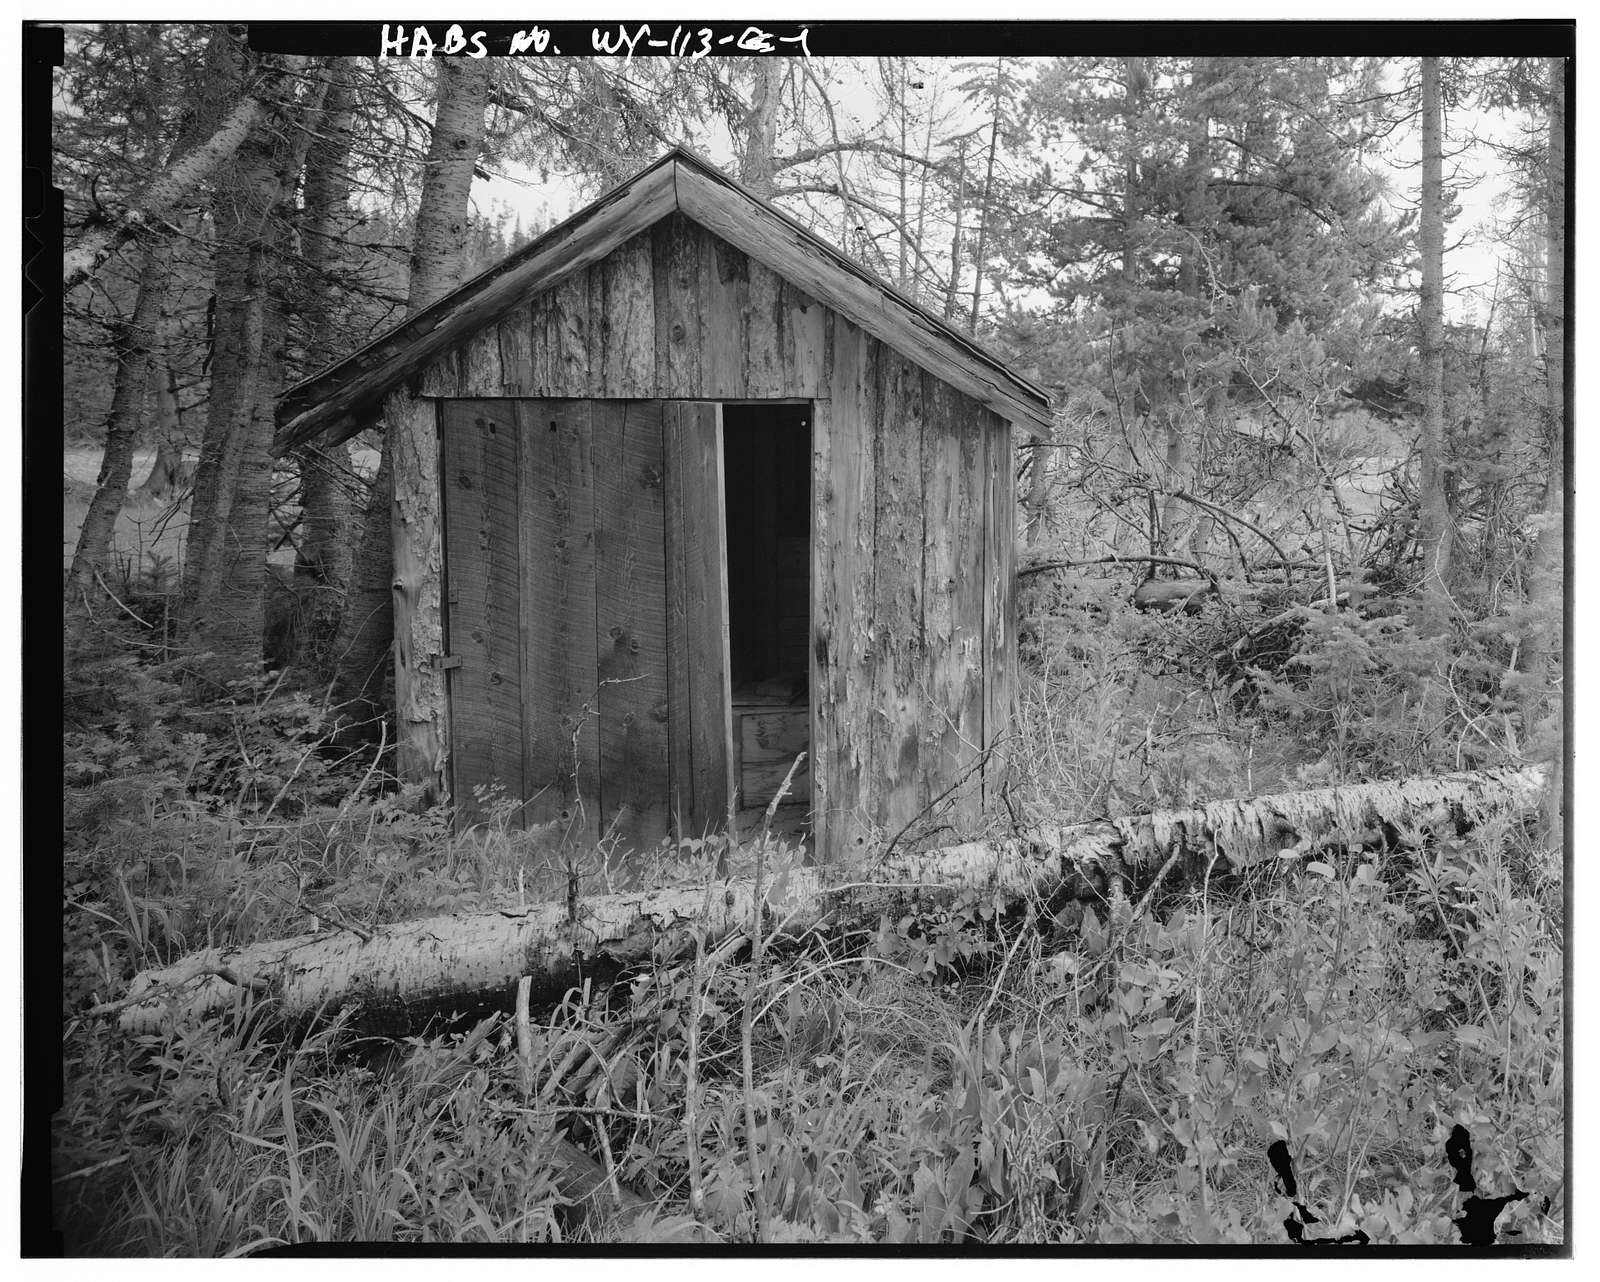 Geraldine Lucas Homestead, Outhouse, West bank Cottonwood Creek, 2.5 miles downstream from Jenny Lake, Moose, Teton County, WY